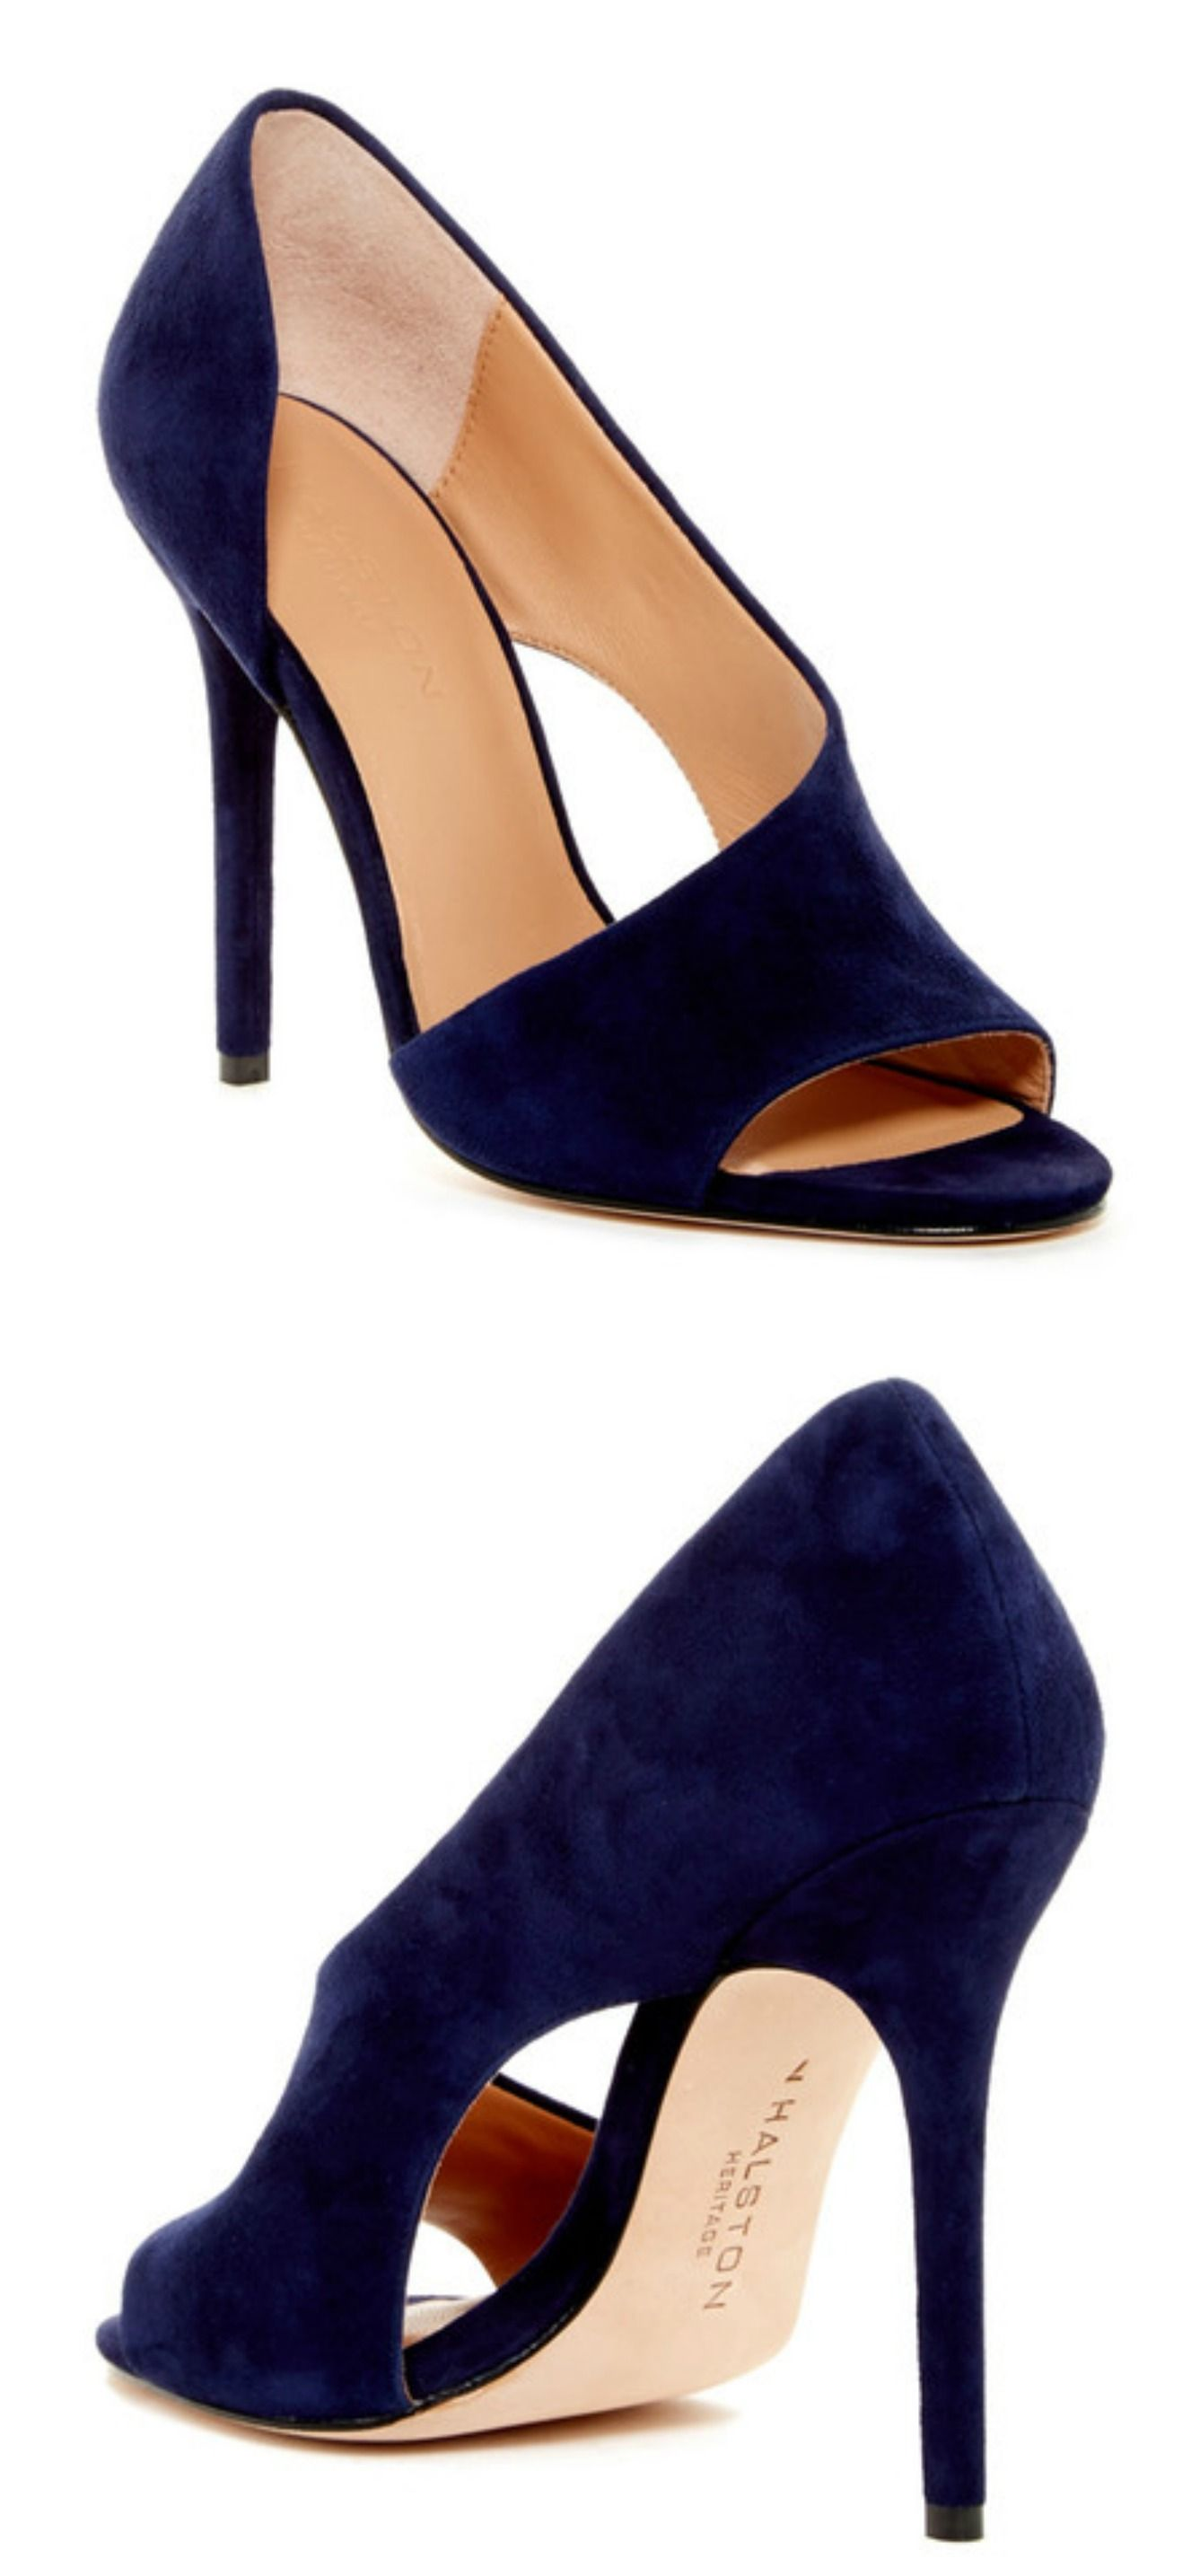 Navy Suede Pumps from Halston